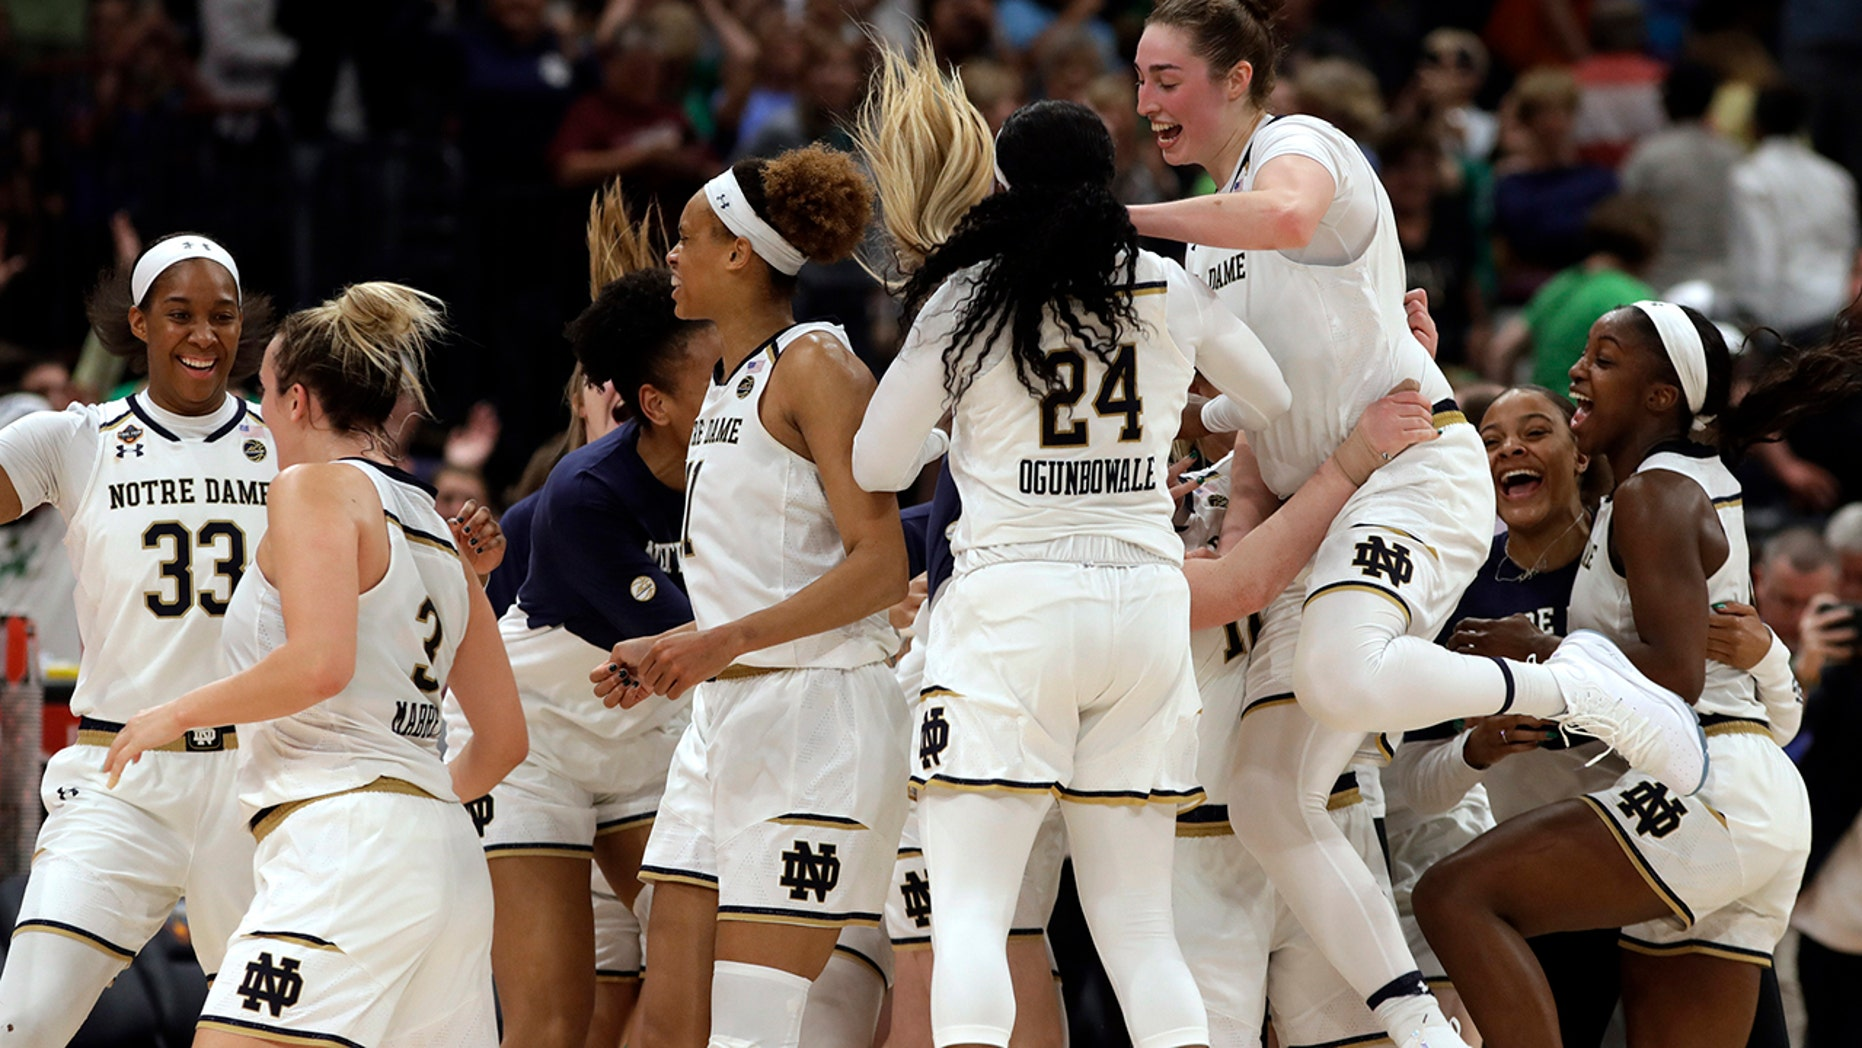 The Notre Dame team celebrates at the end of the team's 81-76 win over Connecticut during a Final Four semifinal of the NCAA women's college basketball tournament Friday, April 5, 2019, in Tampa, Fla.(Associated Press)